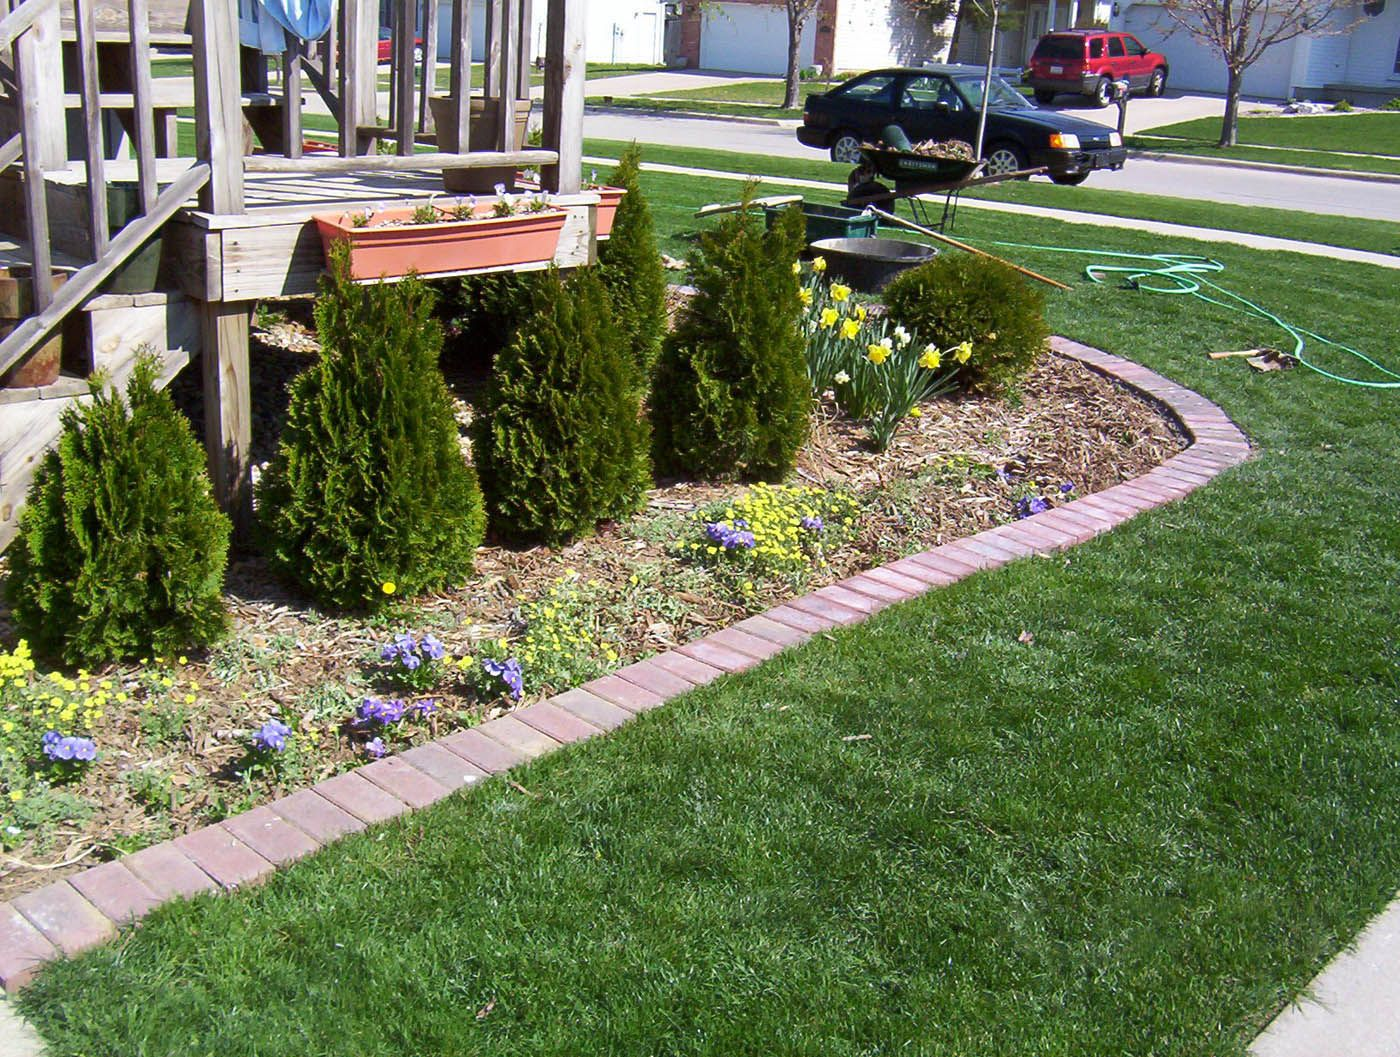 Simple flower bed edging design ideas lawn care for Best flower beds ideas